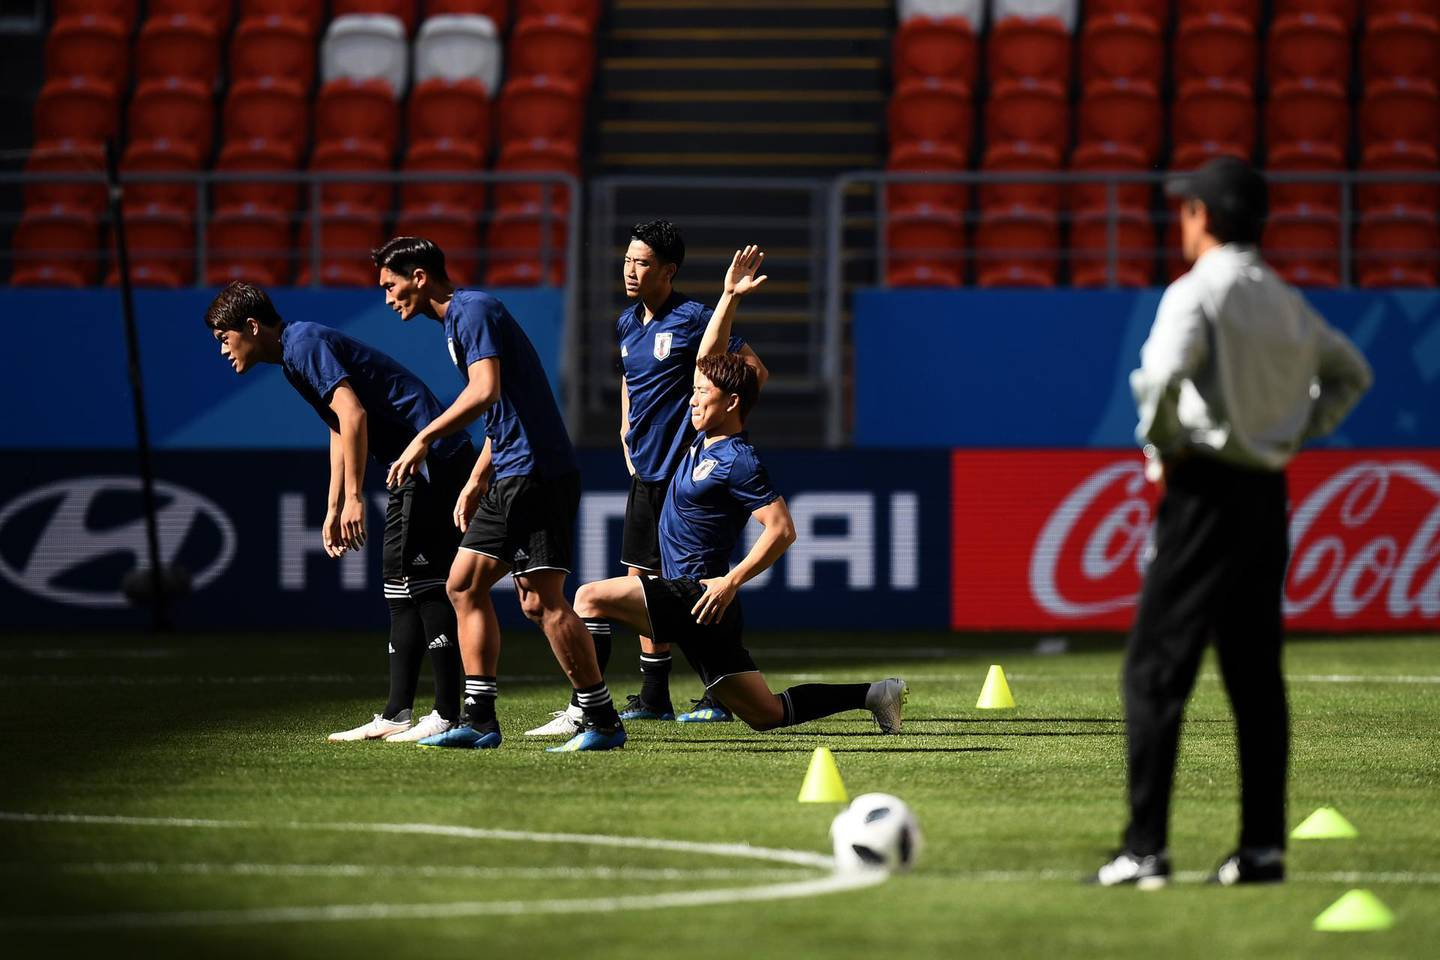 SARANSK, RUSSIA - JUNE 18: Japan's manager Akira Nishino (R) looks on as players stretch during a training session ahead of the FIFA World Cup Group H match between Colombia and Japan at Mordovia Arena on June 18, 2018 in Saransk, Russia. (Photo by Carl Court/Getty Images)